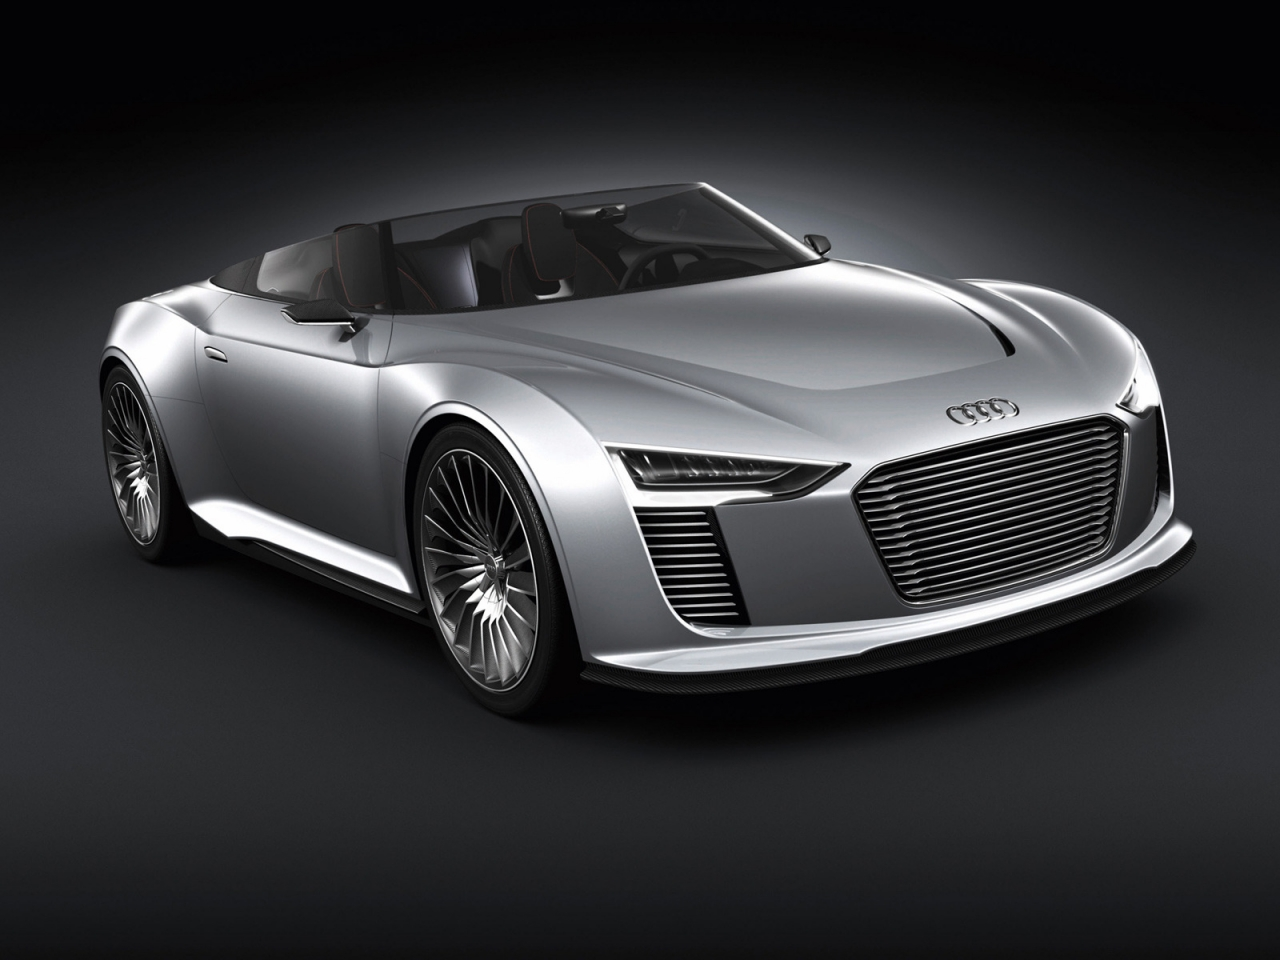 Audi E-Tron Spyder for 1280 x 960 resolution